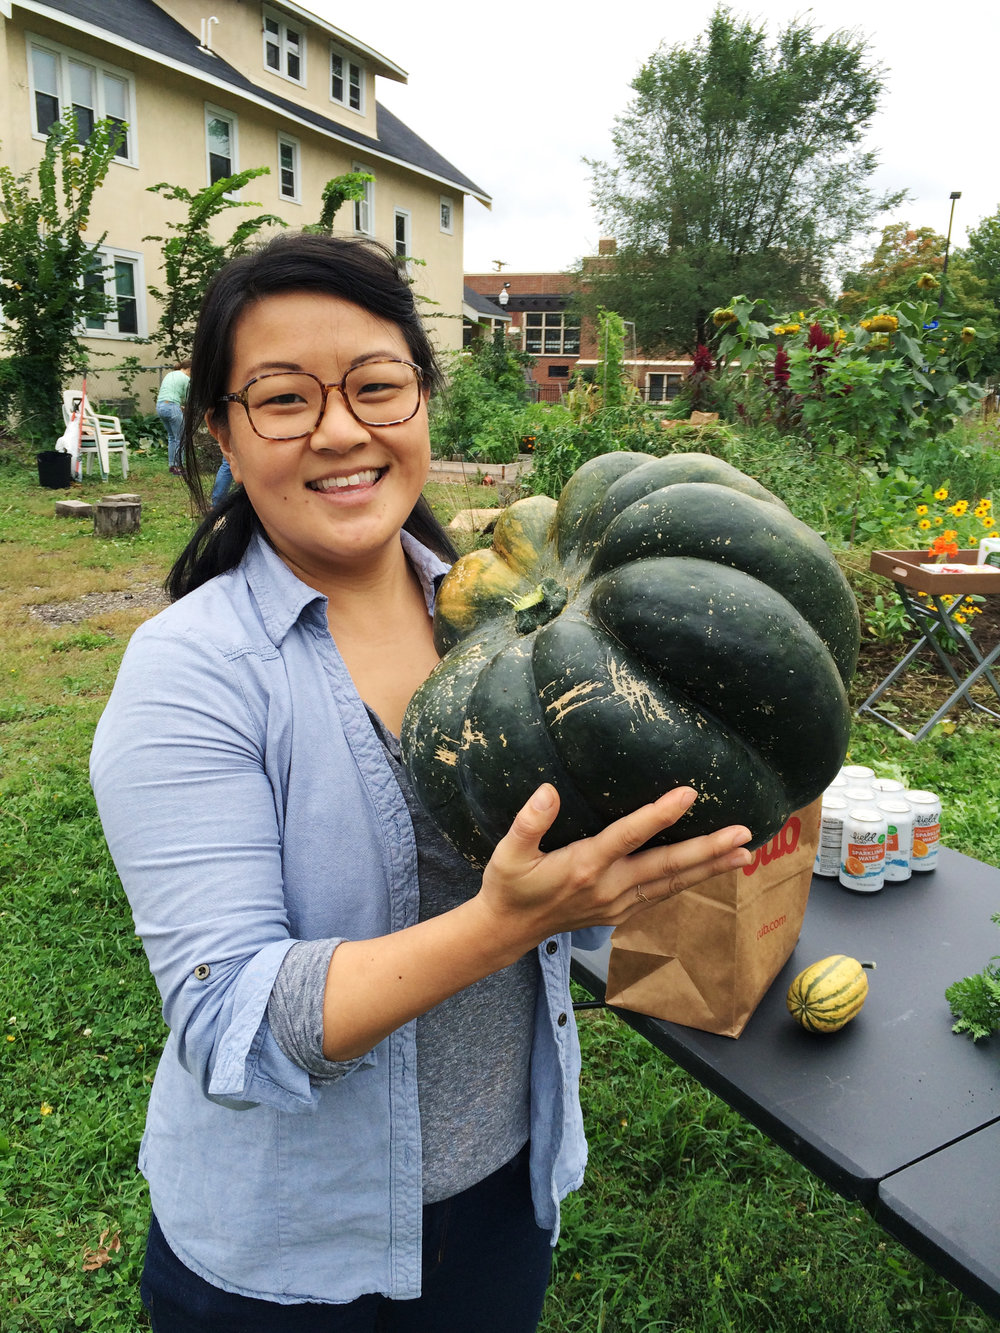 Check out this GIGANTIC squash that the Little Free Farmers Market crew harvested and gave away!